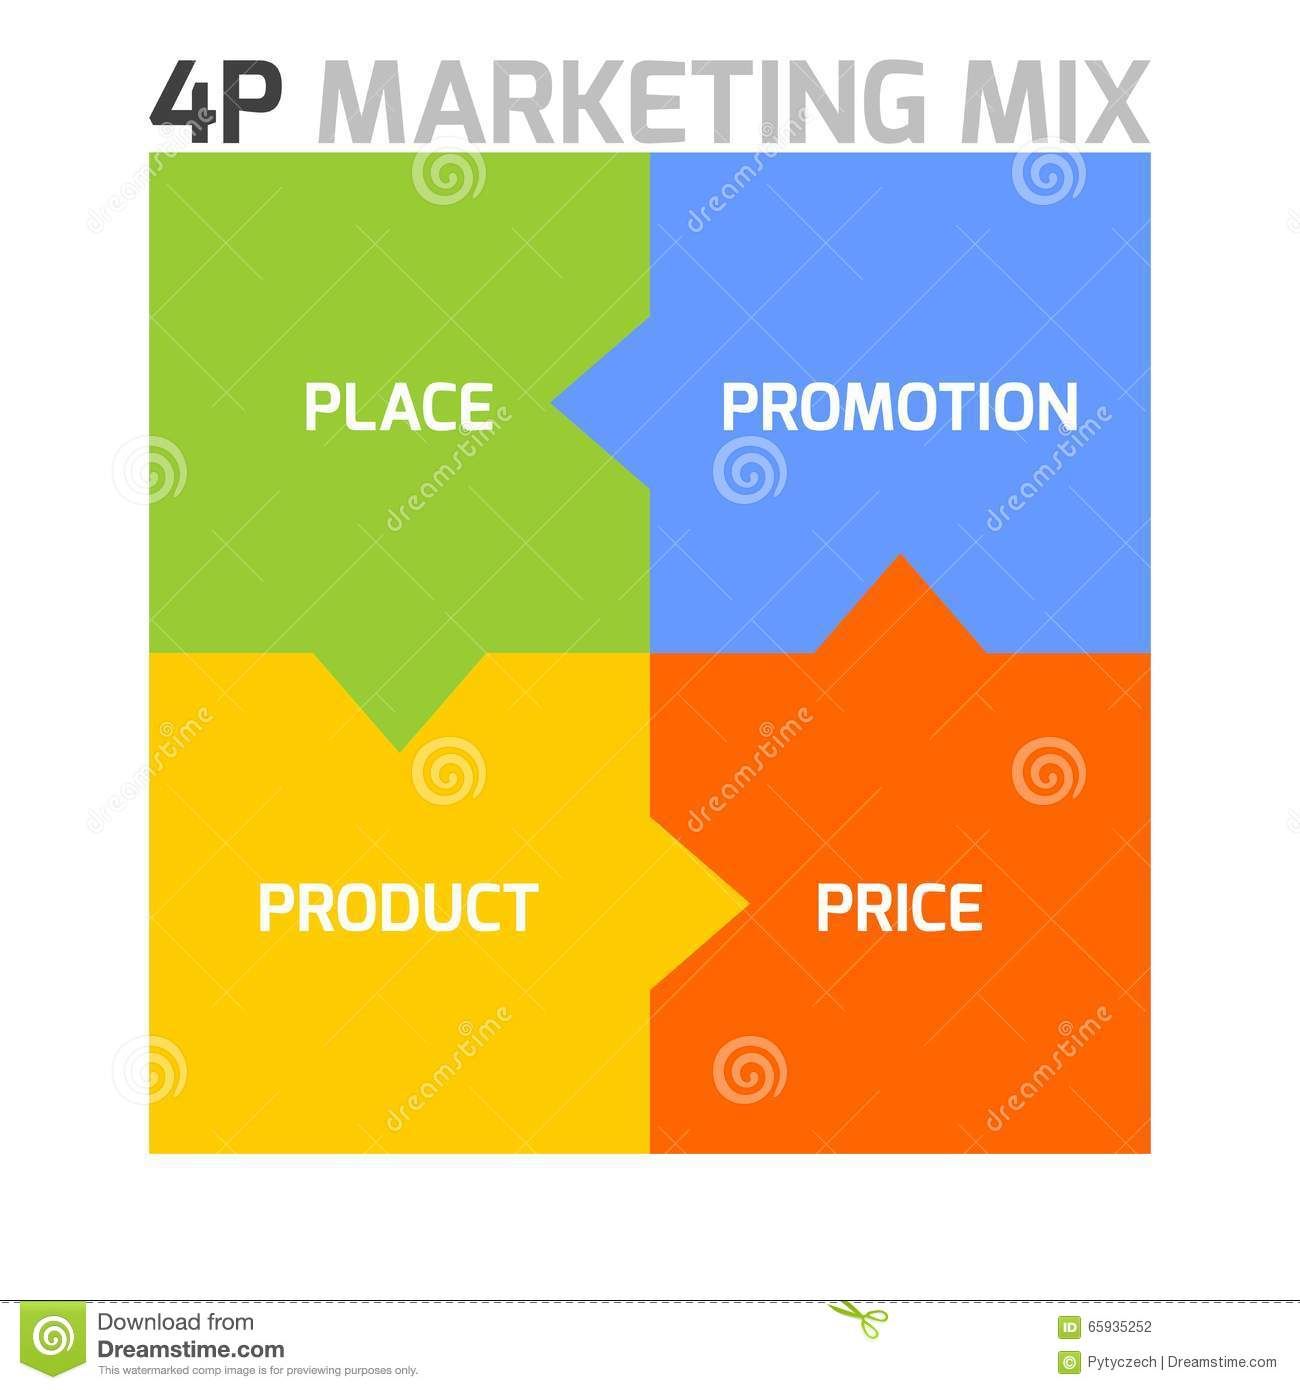 the concept of marketing mix